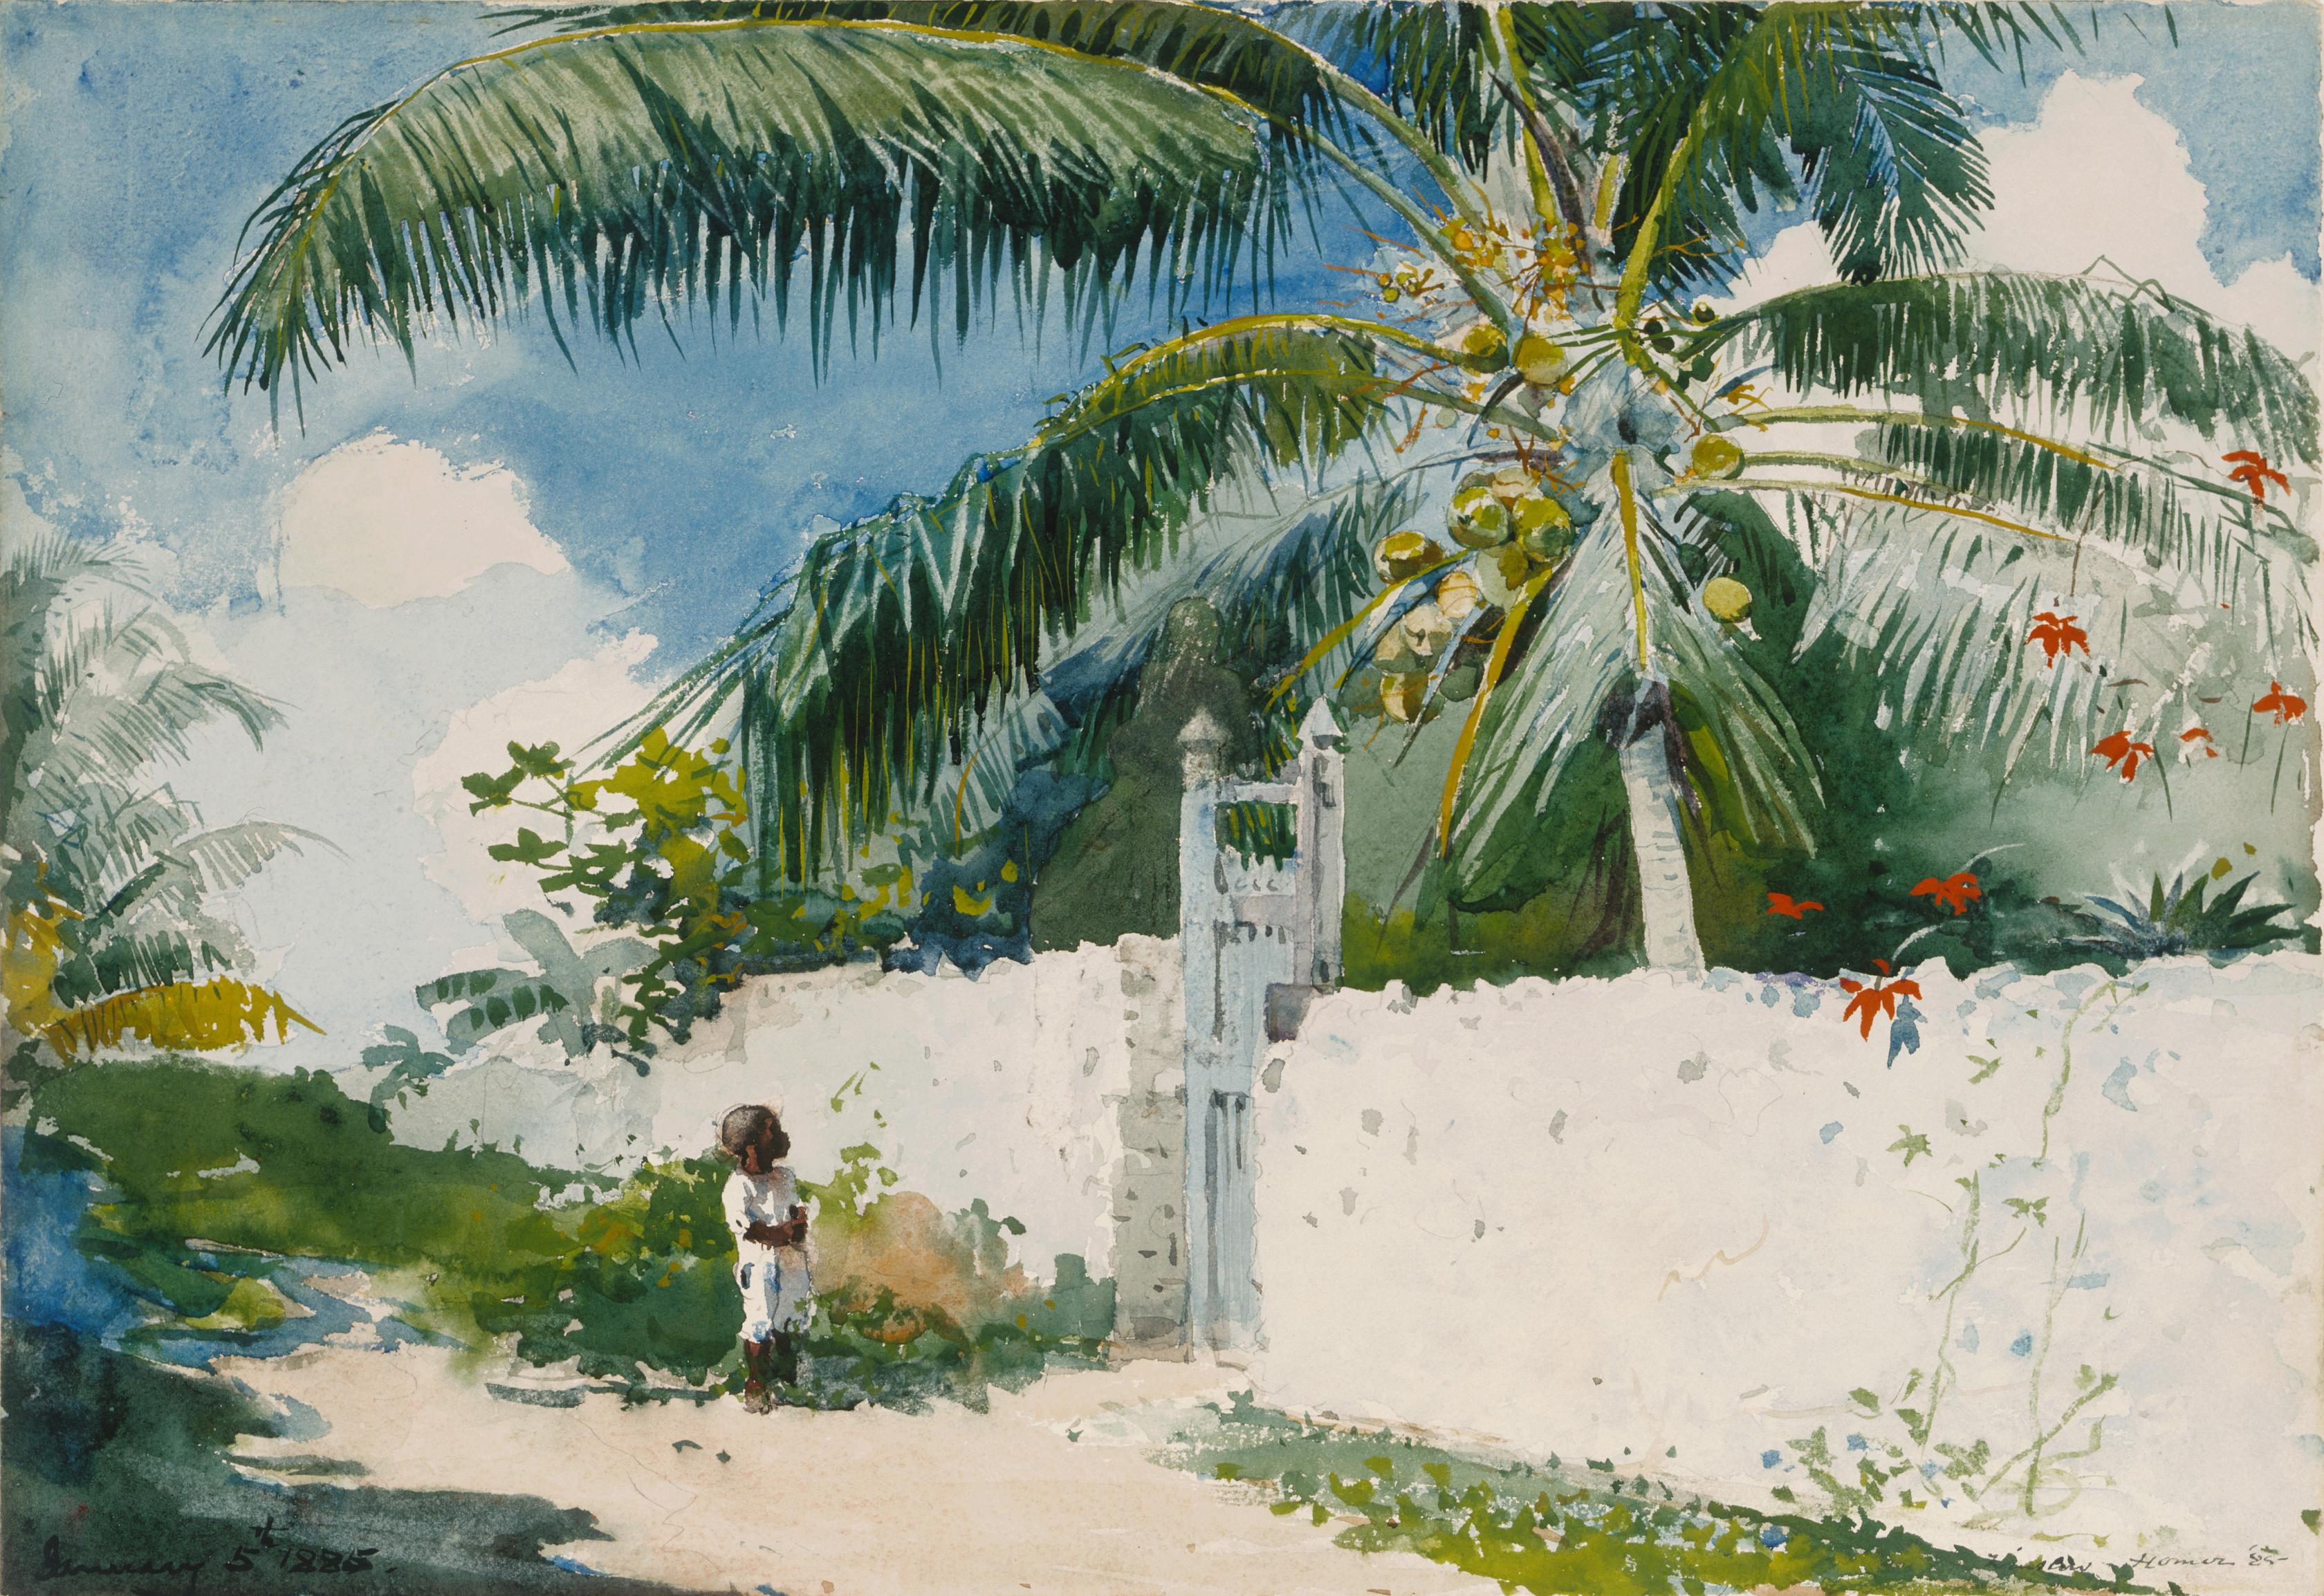 Watercolor artist magazine subscription - Winslow Homer A Garden In Nassau 1885 Watercolor On Textured Paper Art Institute Of Chicago On Display At The Philadelphia Museum Of Art